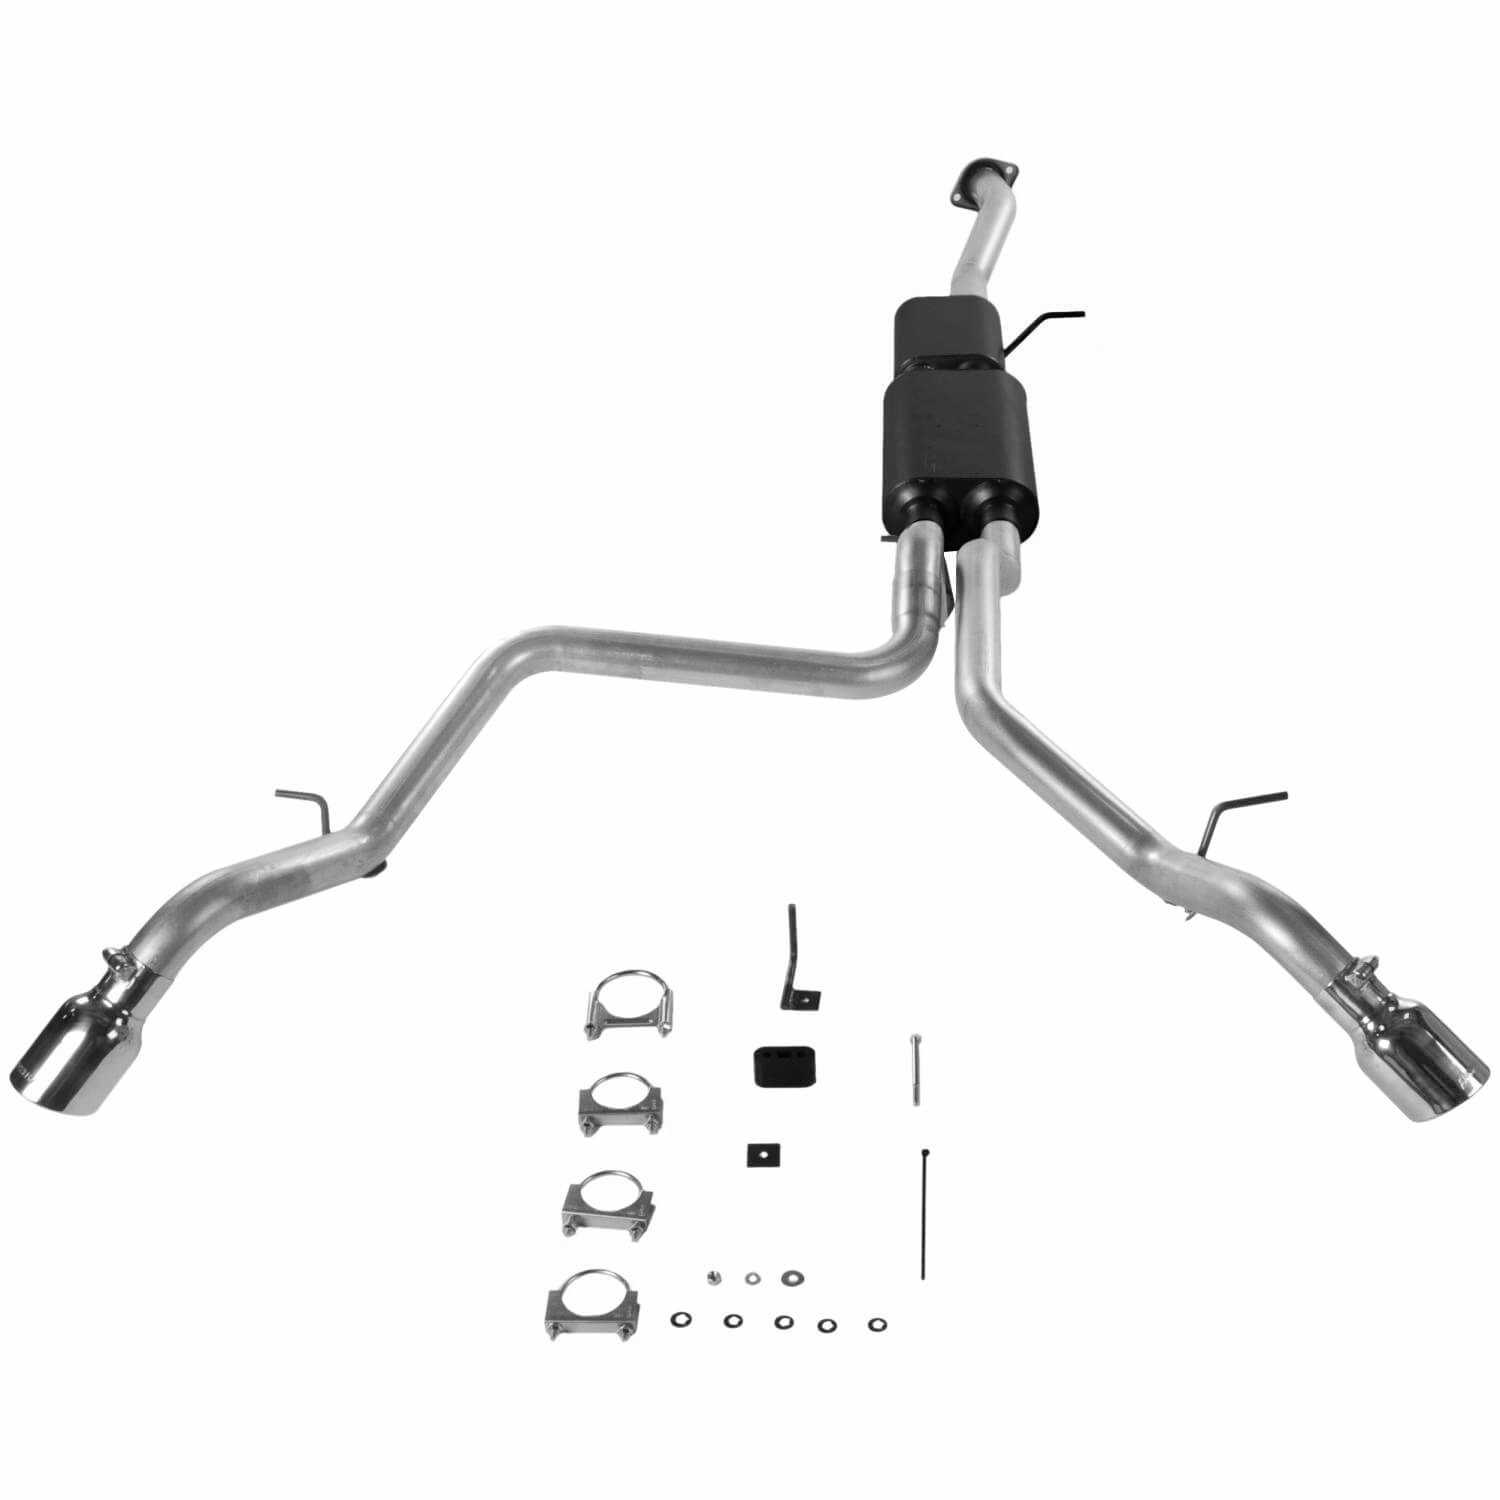 817342 Flowmaster American Thunder Cat Back Exhaust System